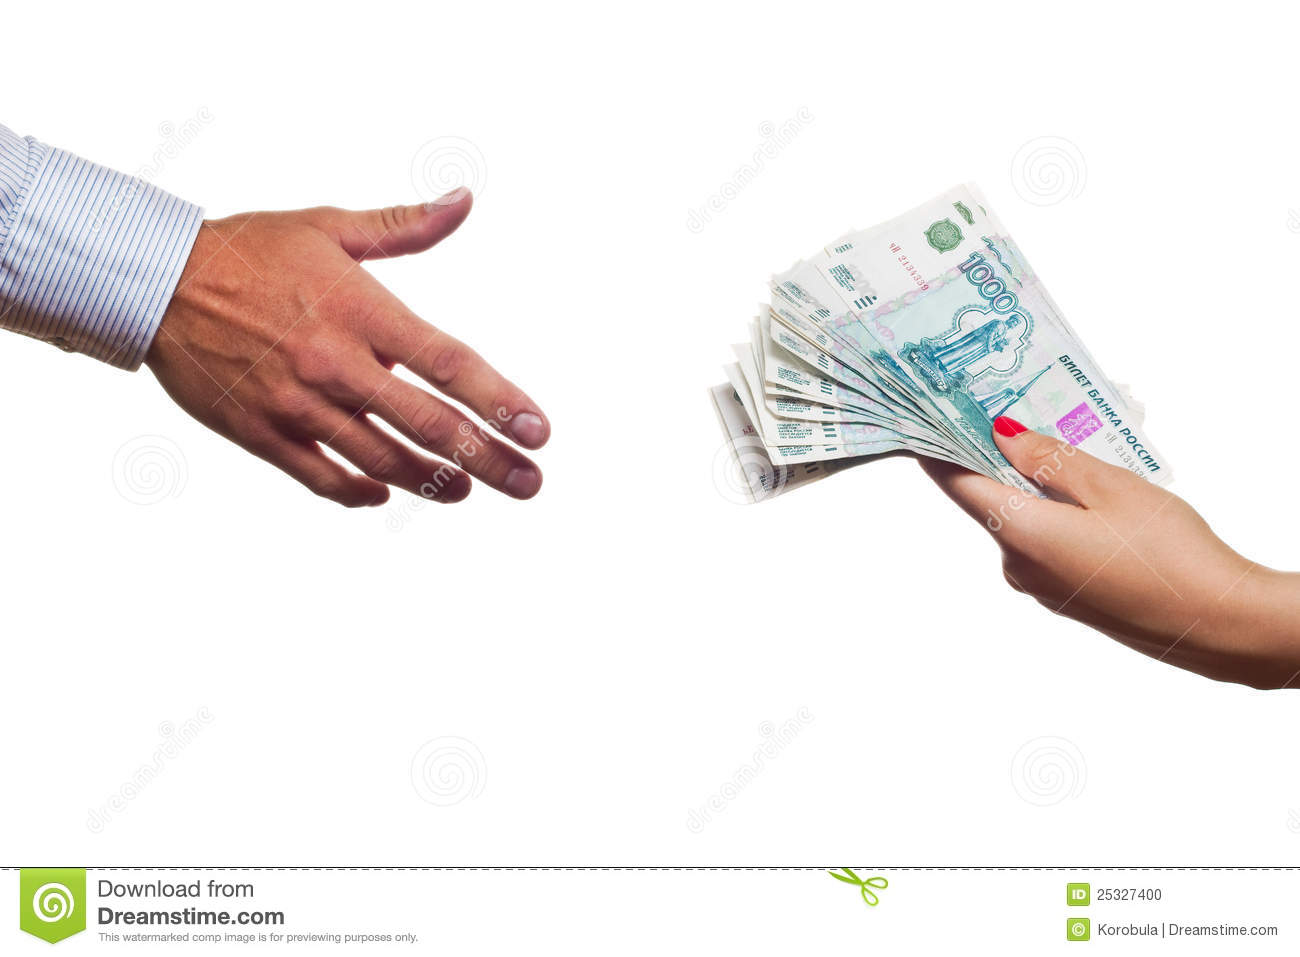 Russian Money Transfer From Hand To Hand Stock Photo